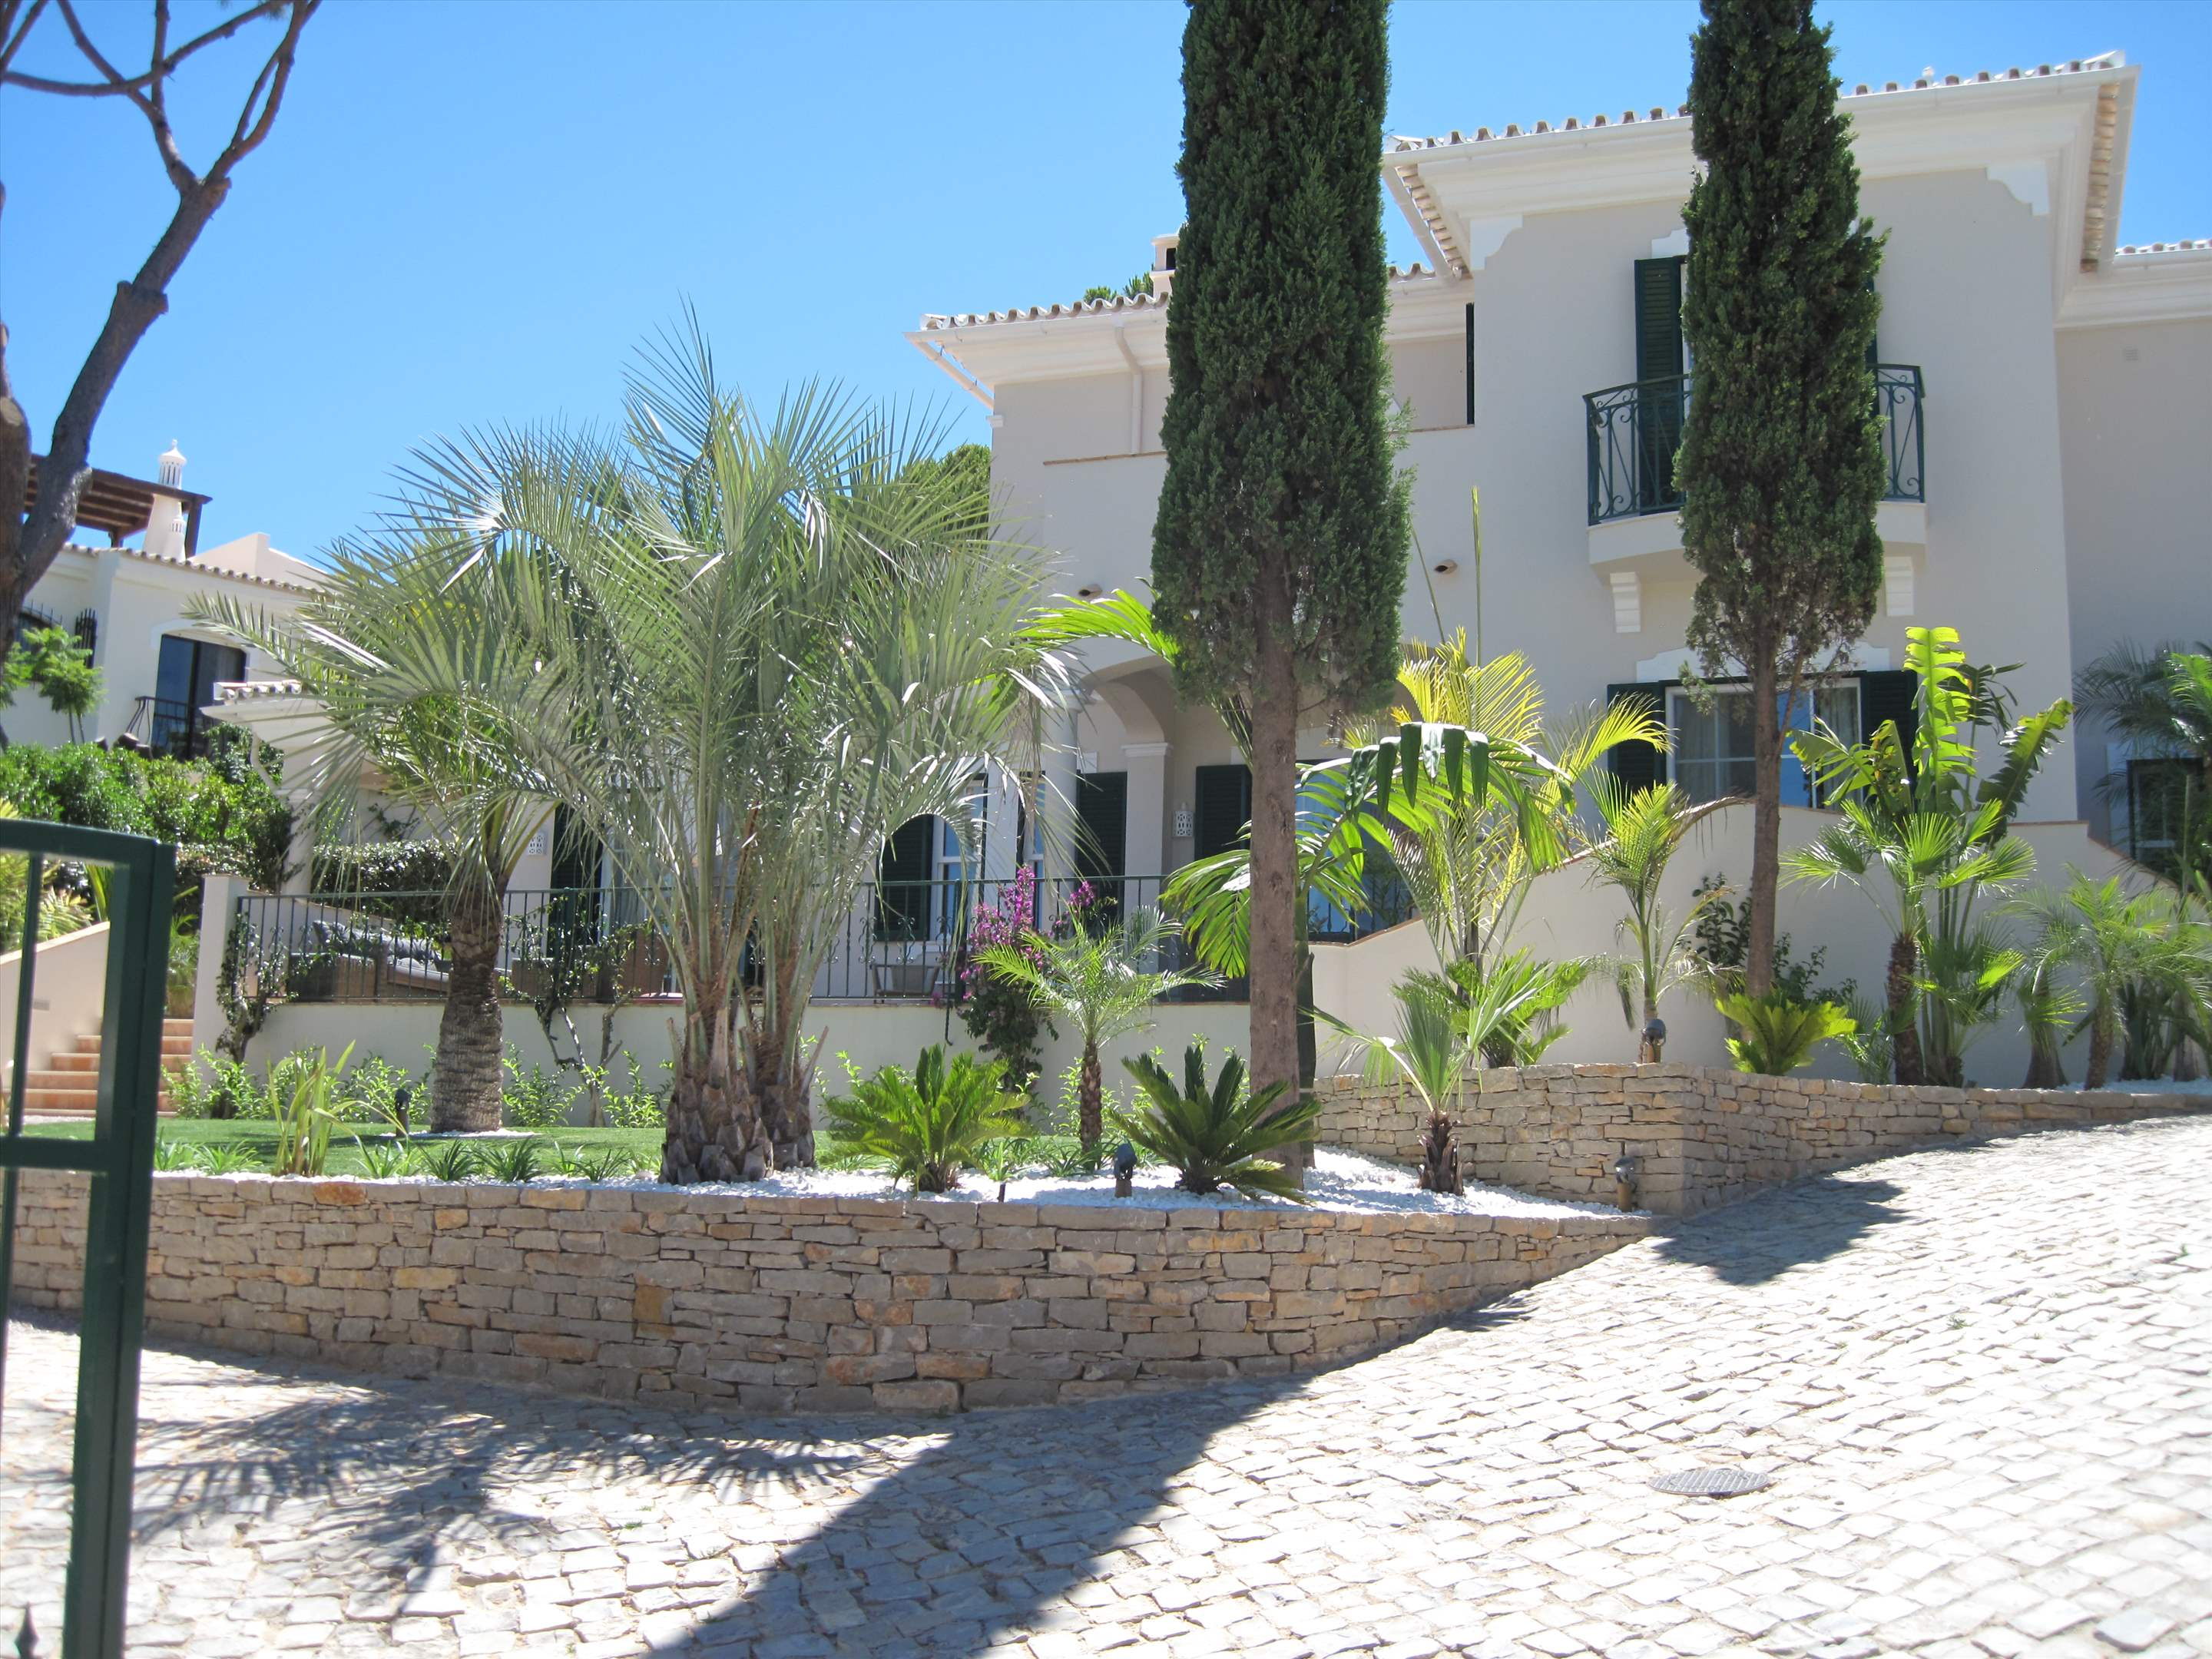 Villa Ariana, 4 bedroom villa in Dunas Douradas, Algarve Photo #4